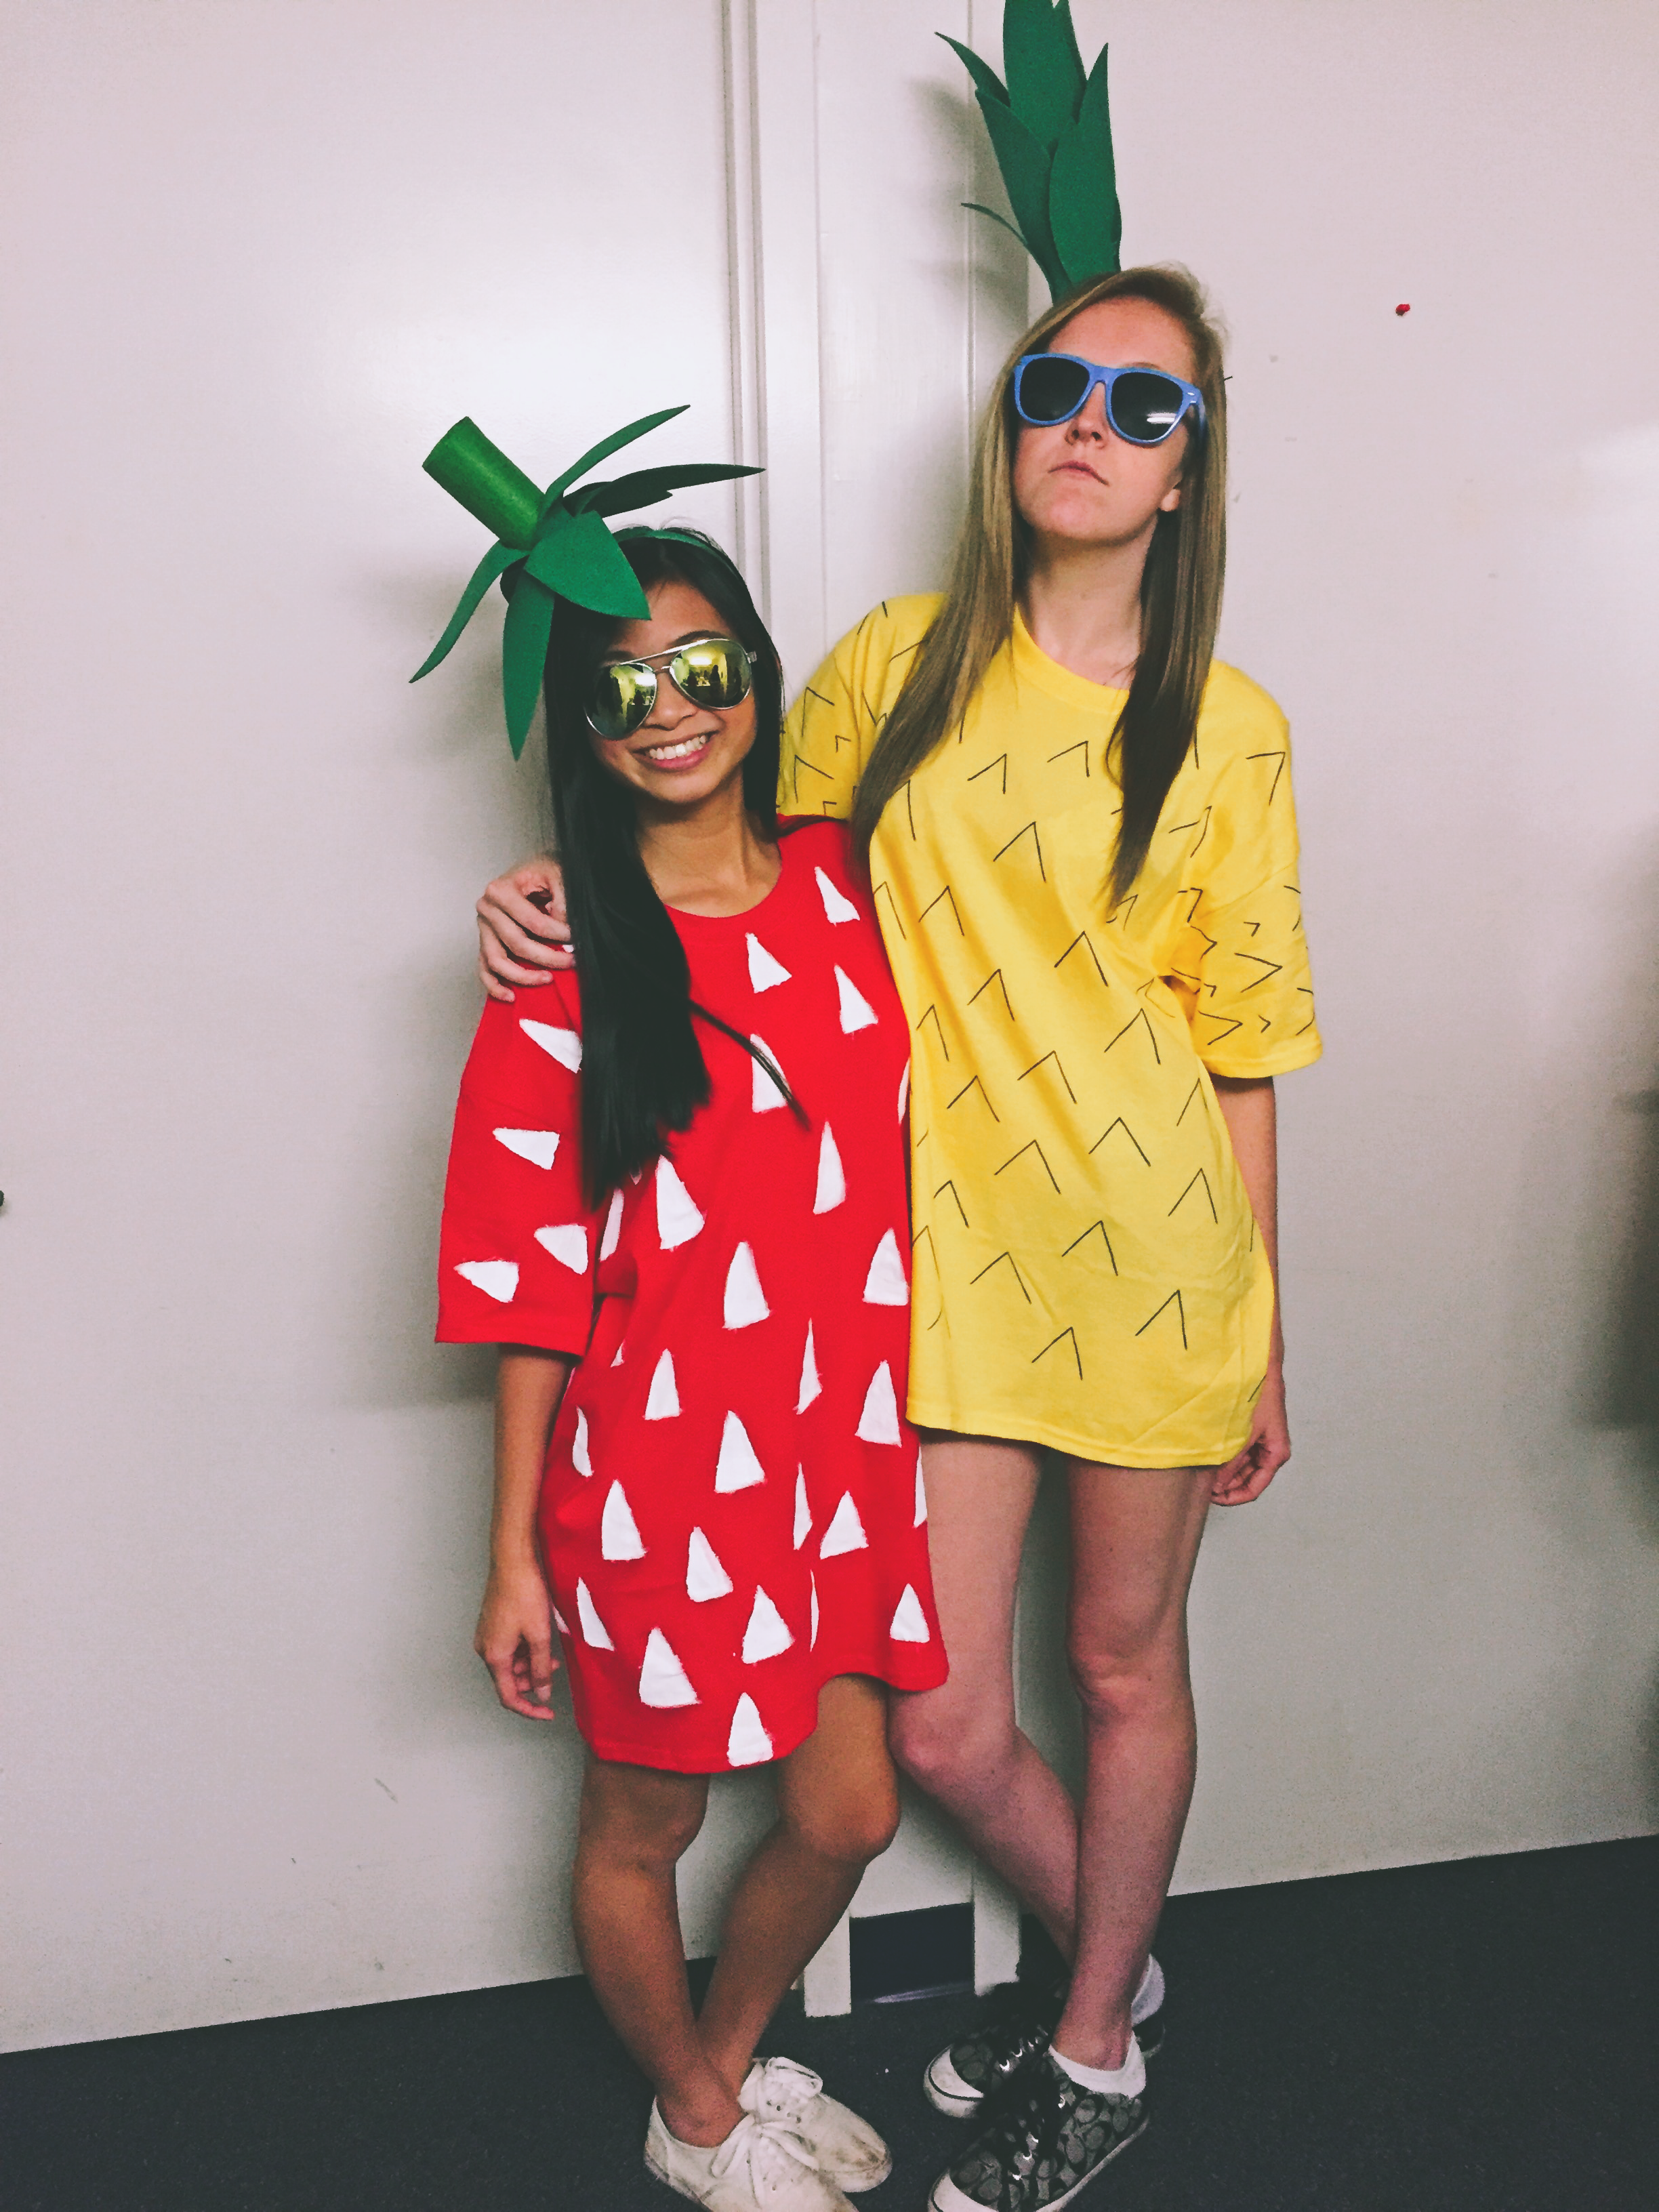 strawberry costume and pineapple costume halloween costume ideas costumes pinterest. Black Bedroom Furniture Sets. Home Design Ideas